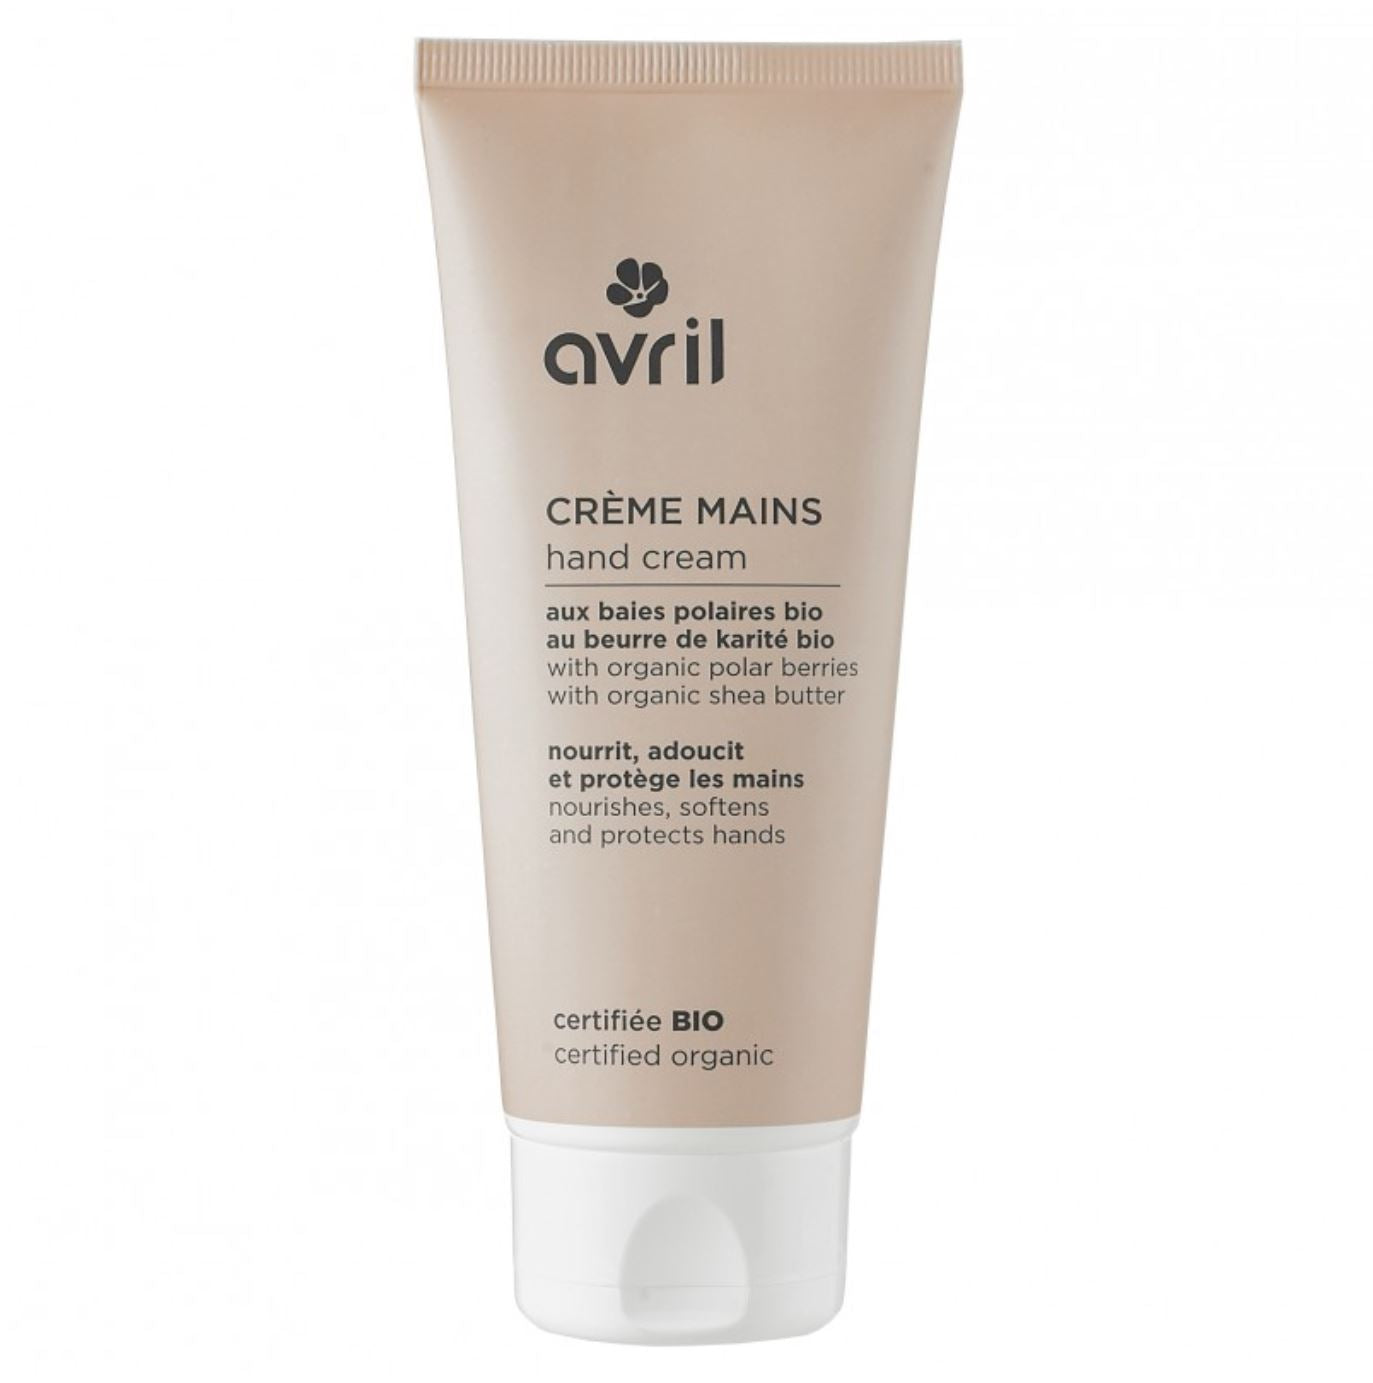 AVRIL HAND CREAM 100ml- certified organic by ECOCERT